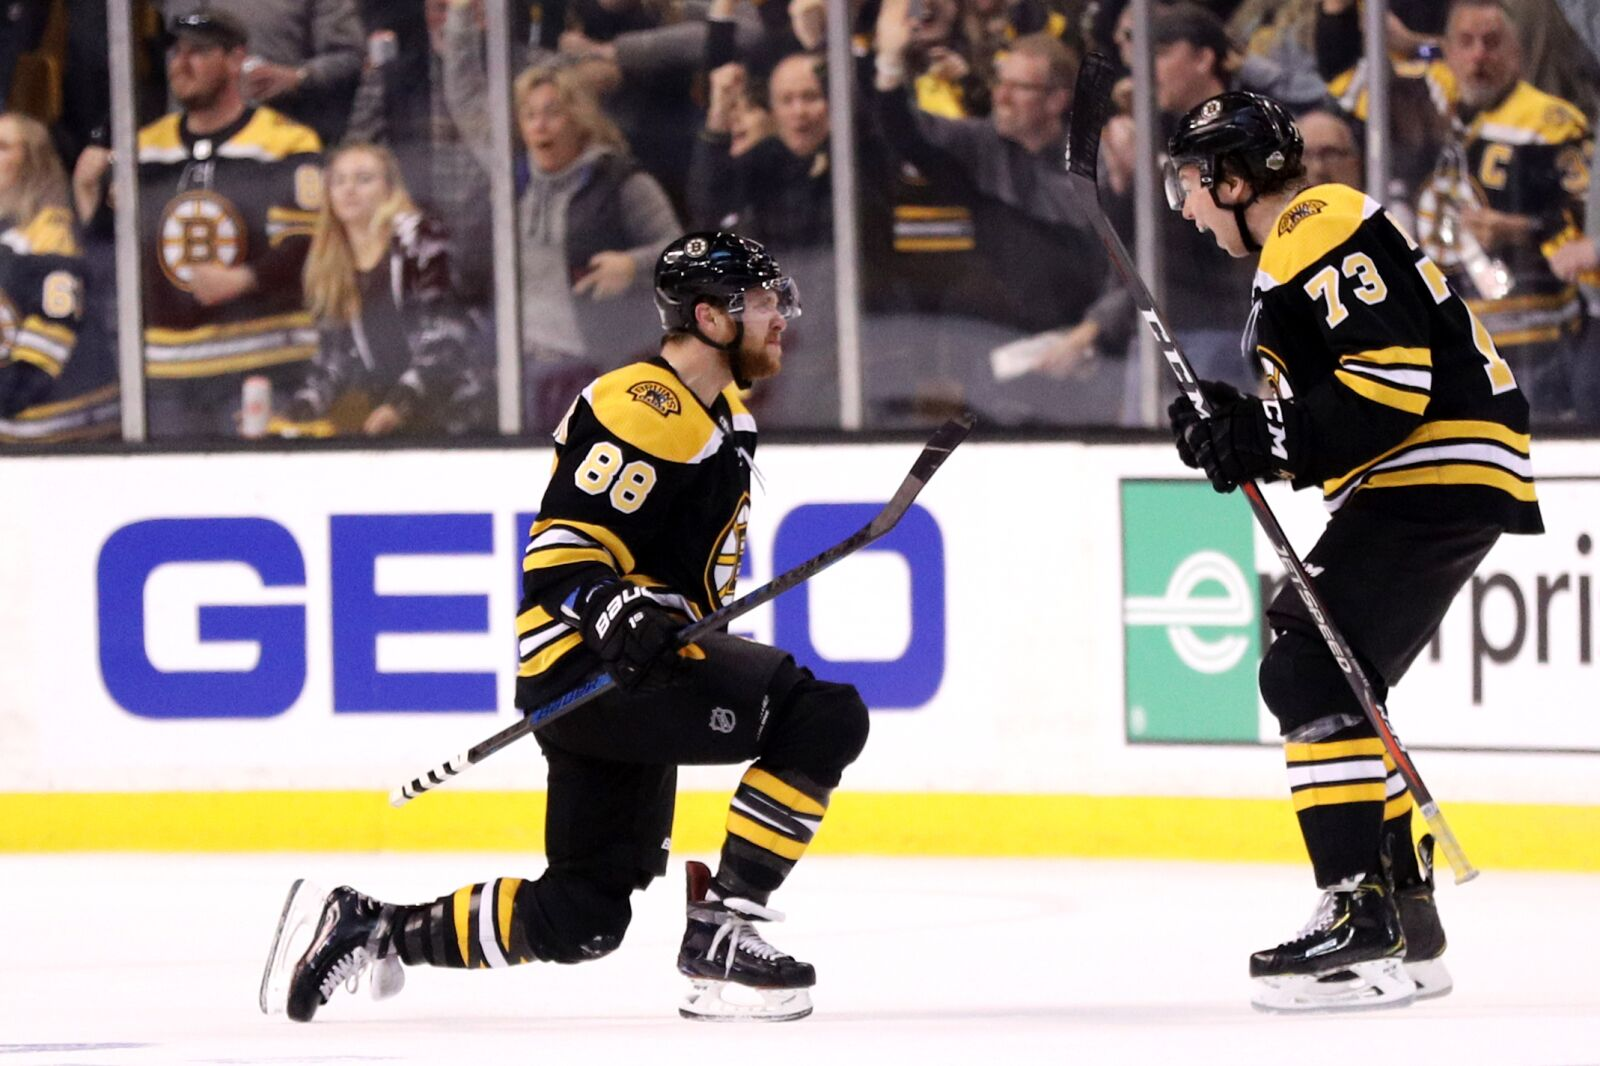 Boston Bruins: Boston Bruins: B's Dominate Maple Leafs In Game 1 Victory